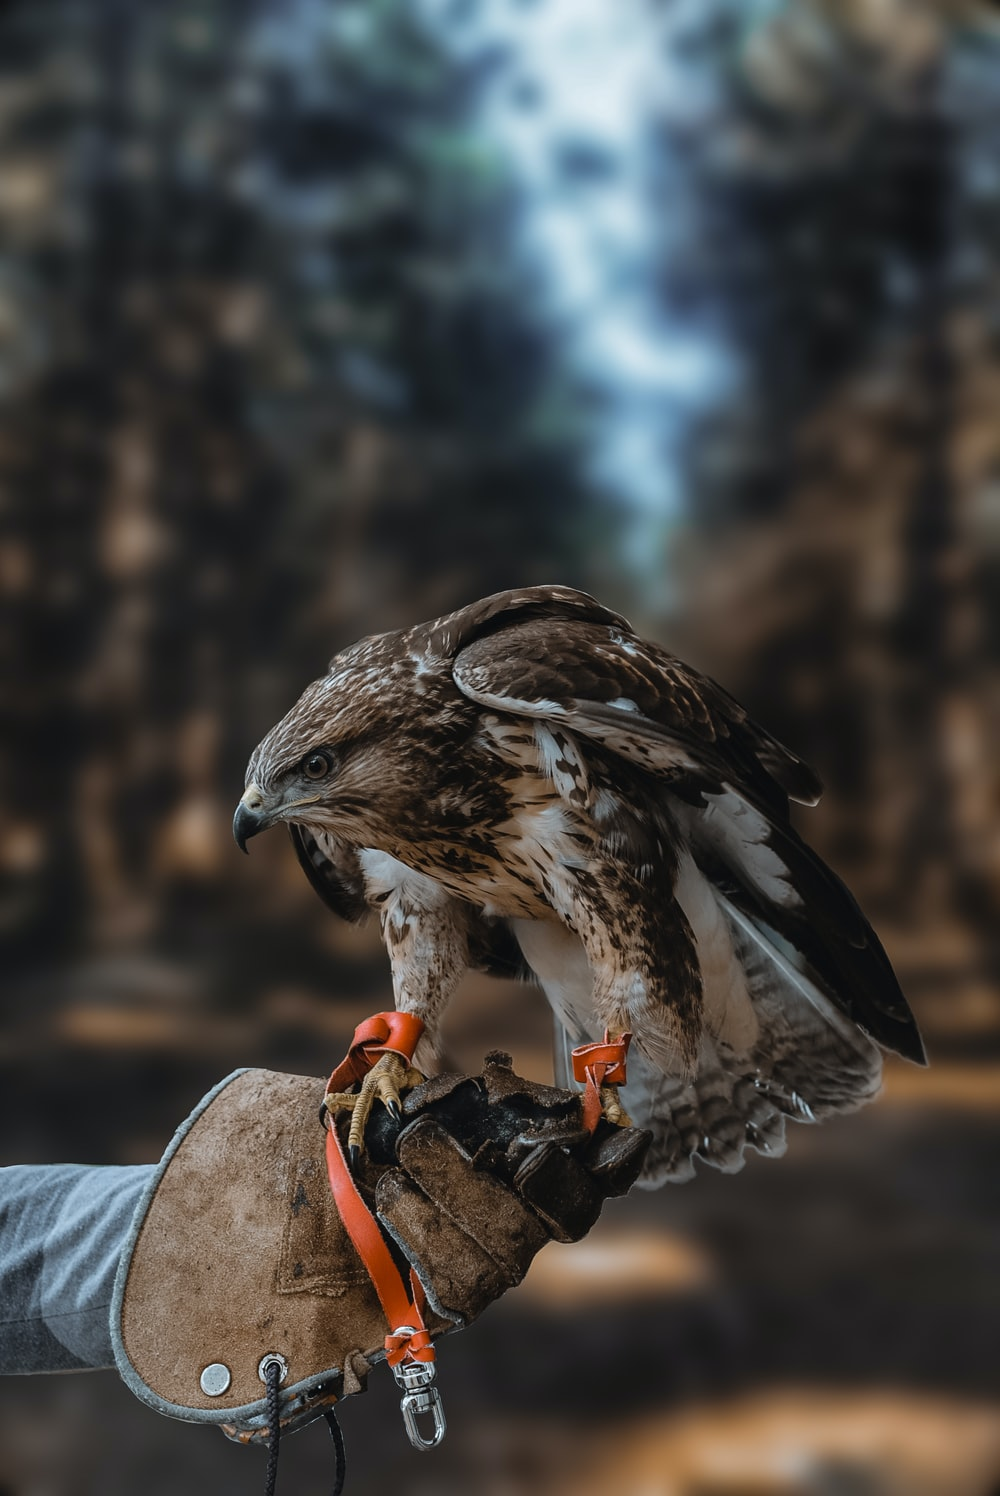 white and brown hawk on person's hand